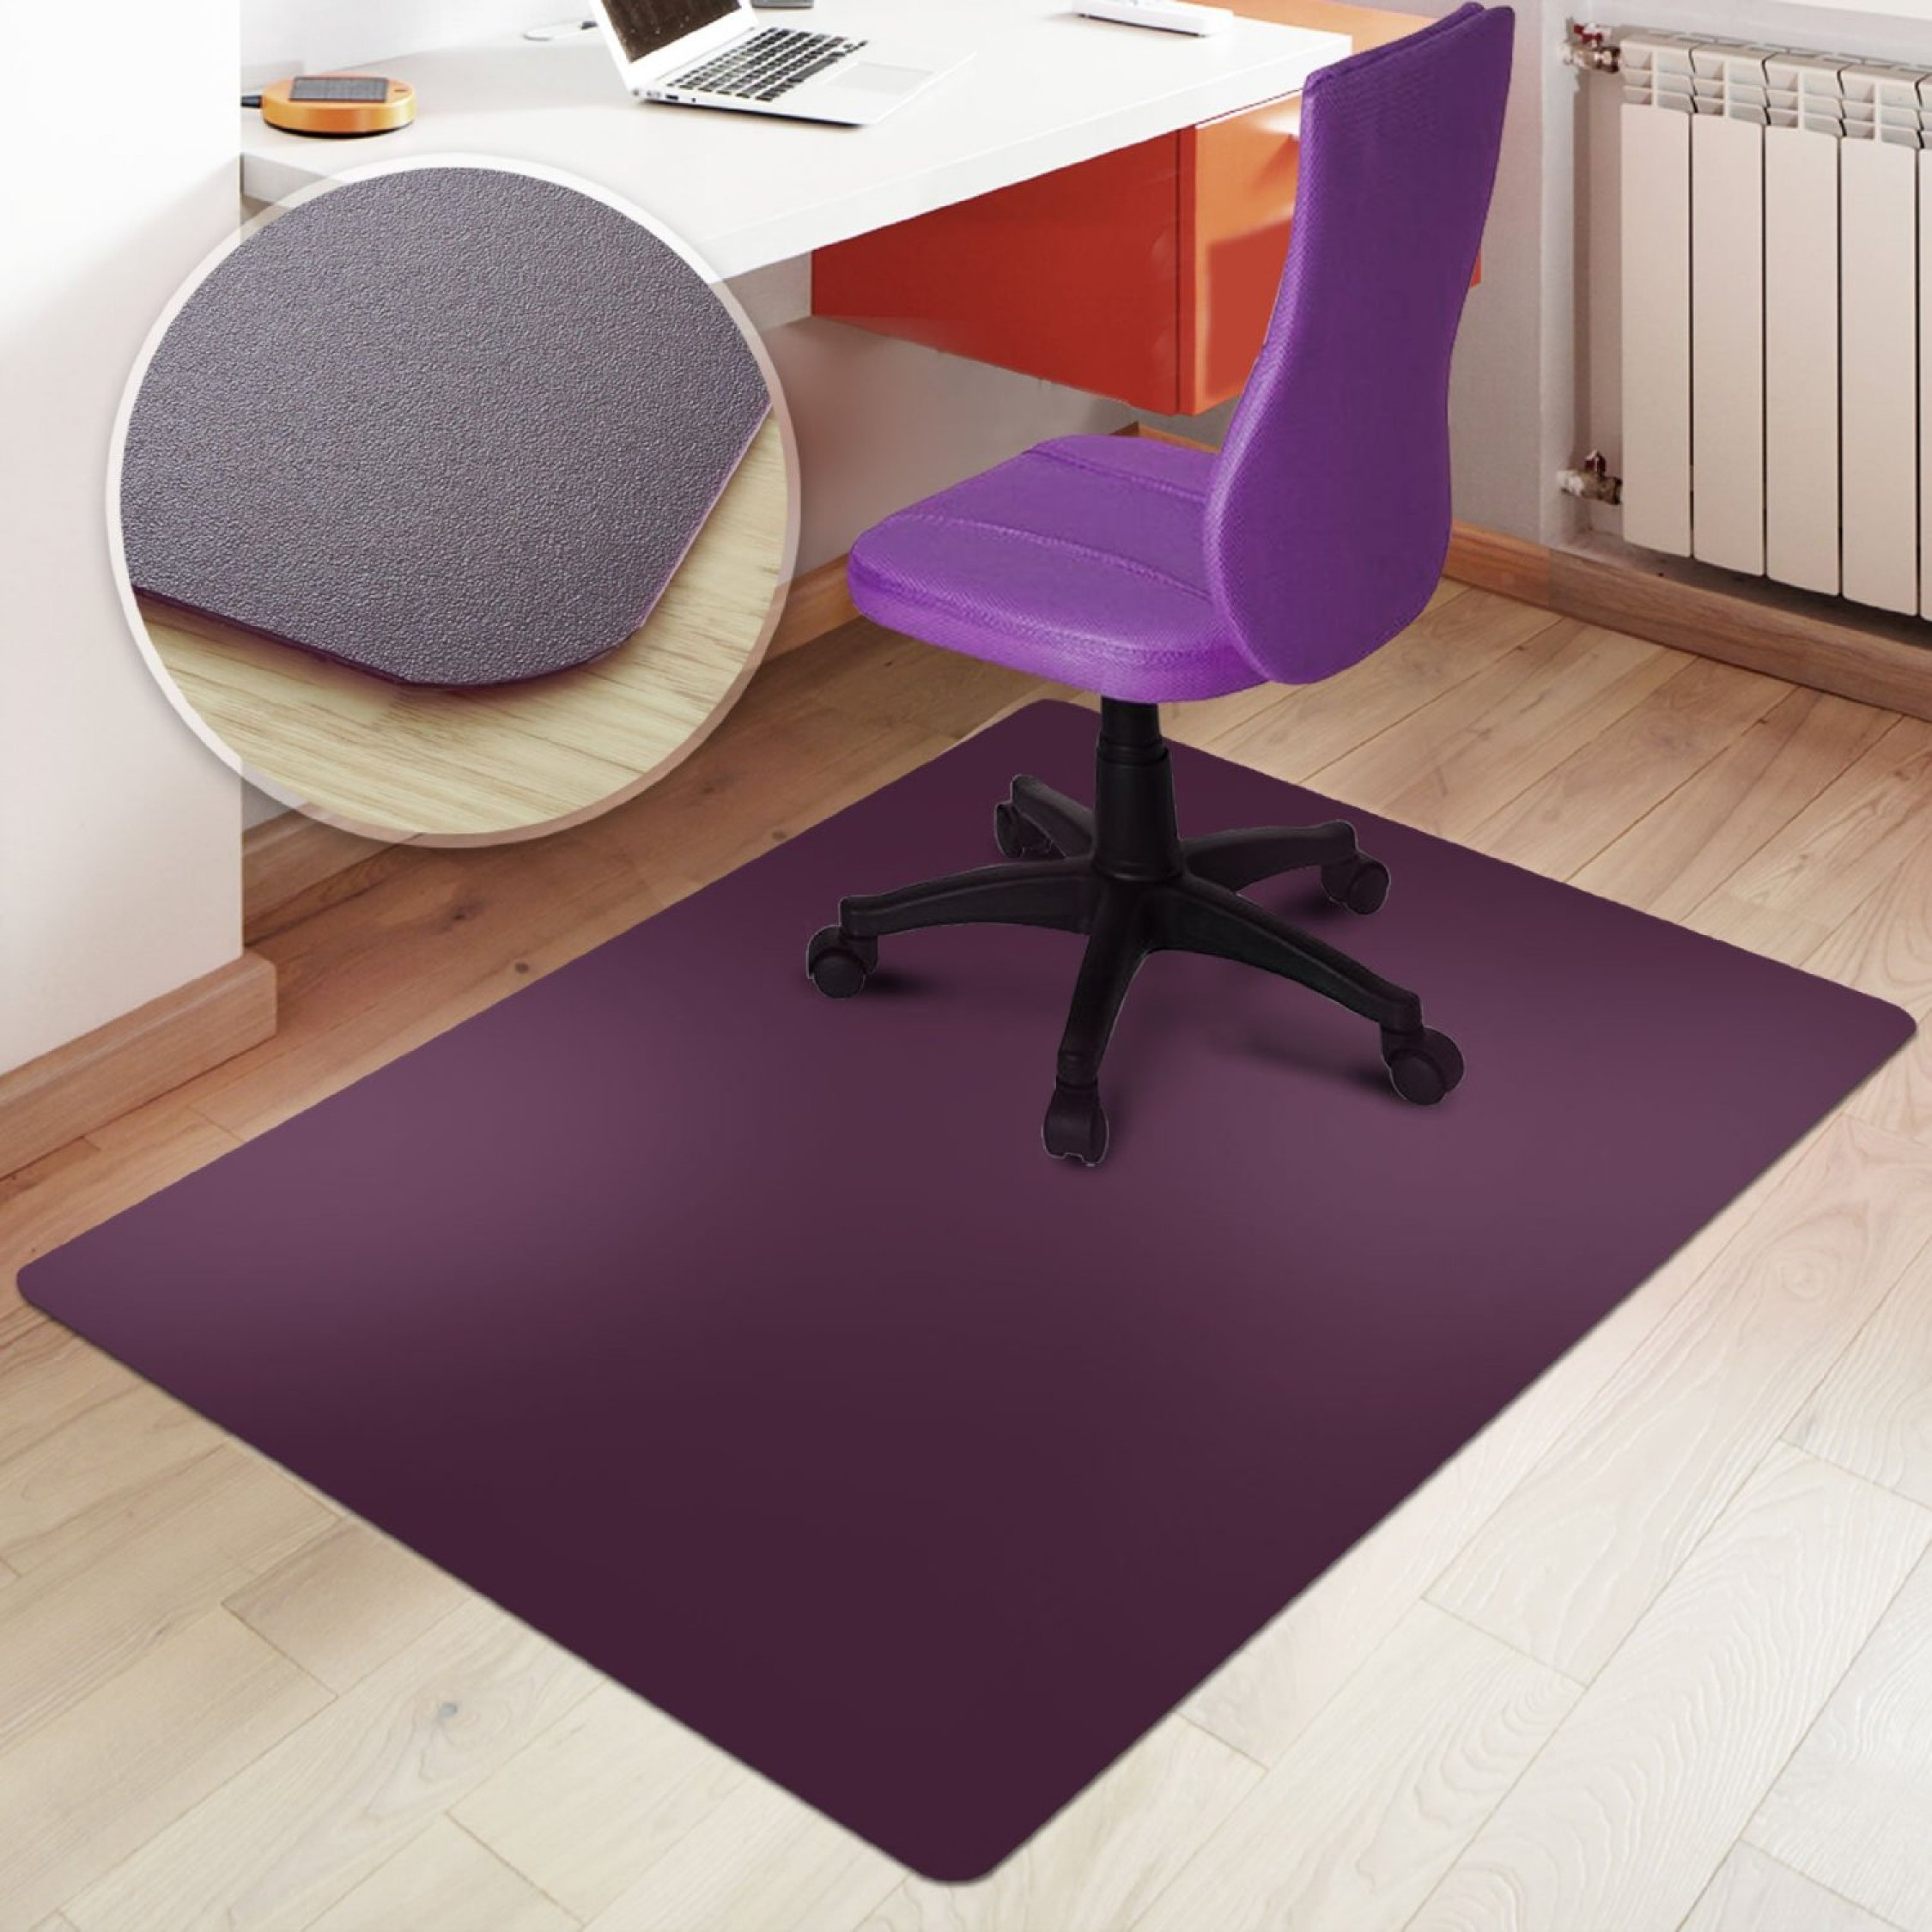 Chair Floor Mat Rectangular Office Chair Mat Purple Hard Floor Protection